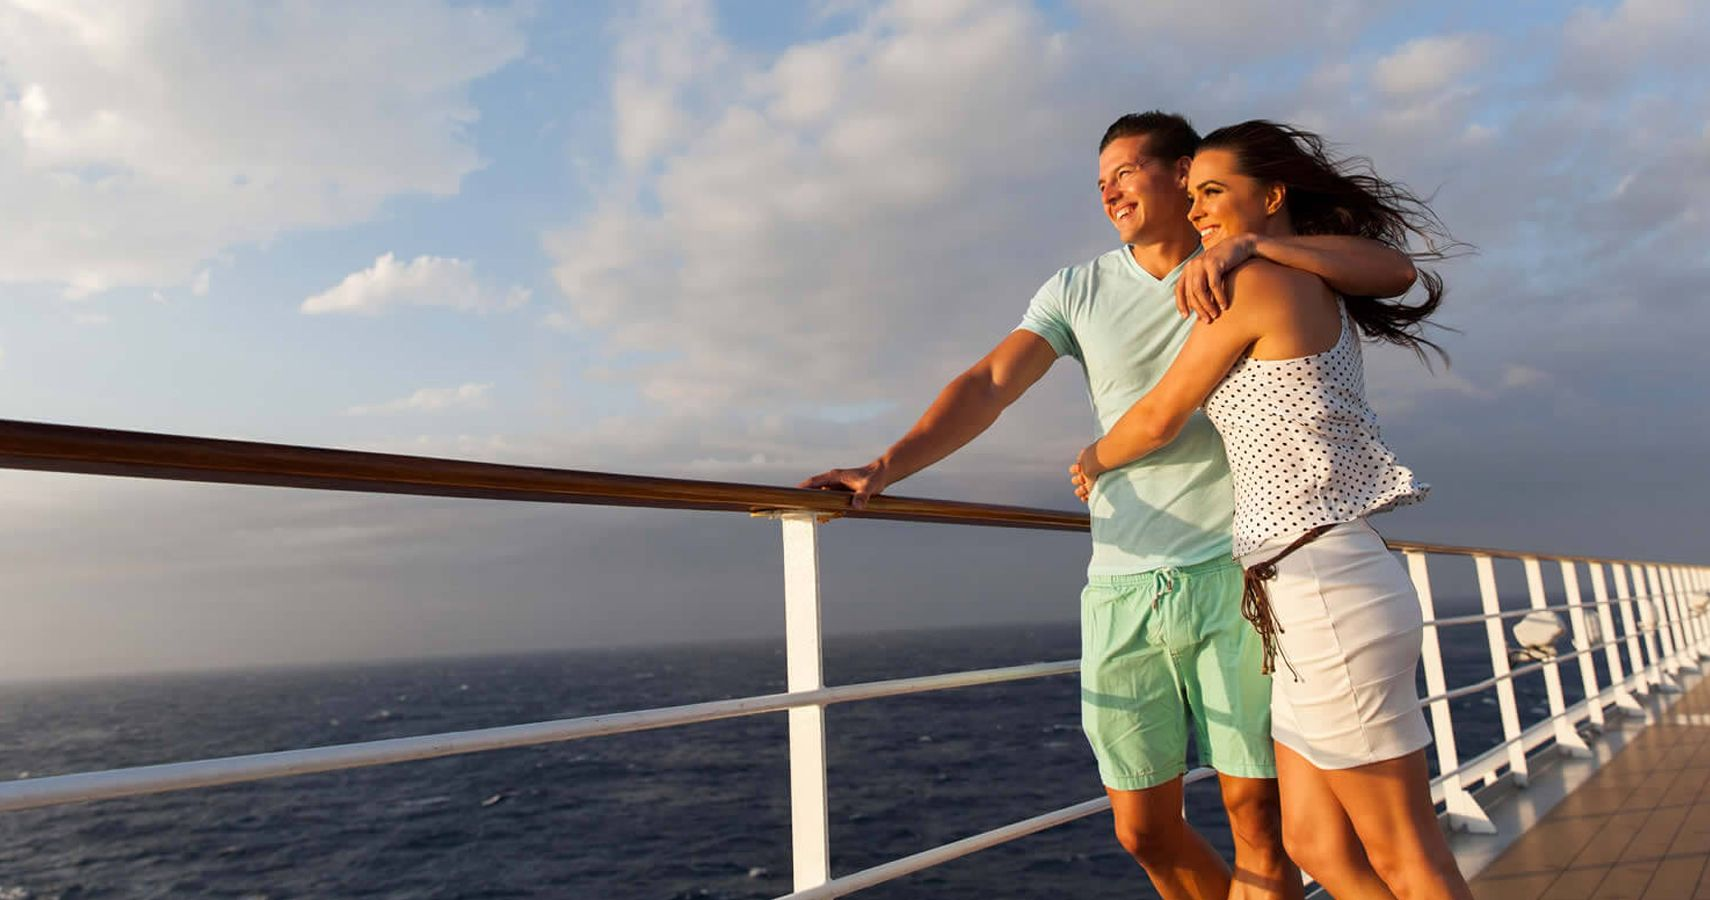 10 Things Every Couple Should Consider Before Choosing Their Cruise